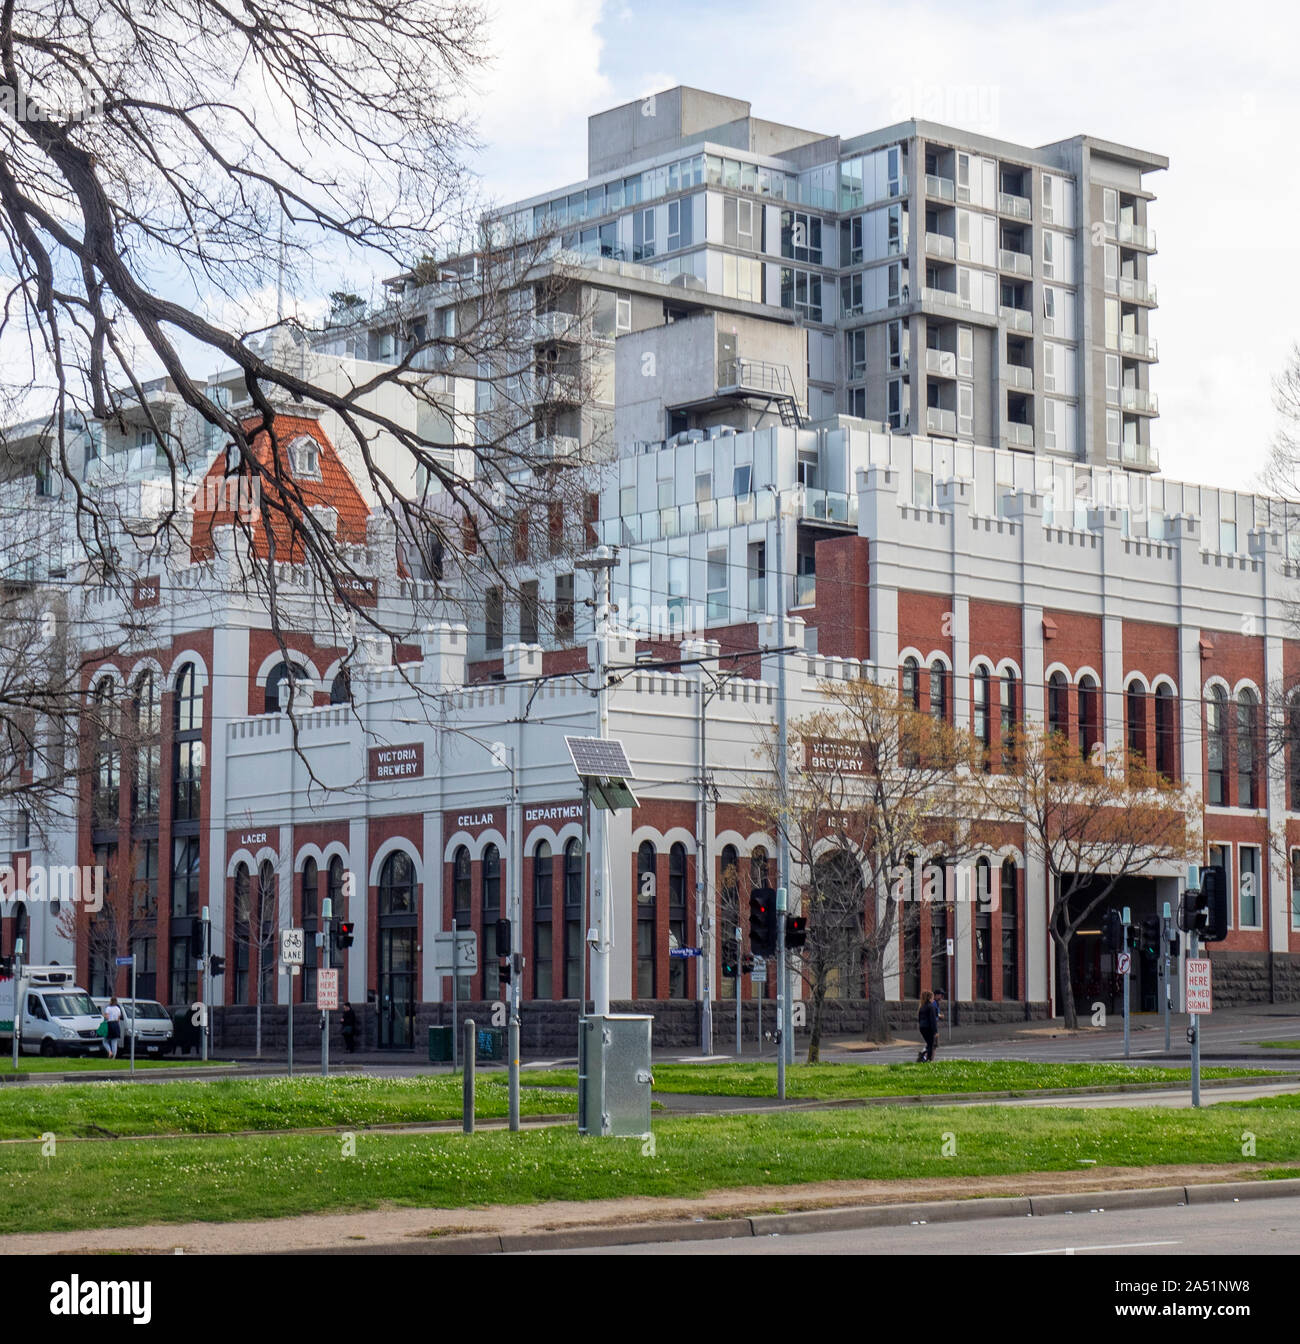 redevelopment-of-victoria-brewery-site-into-tribeca-high-density-residential-apartments-east-melbourne-victoria-australia-2A51NW8.jpg